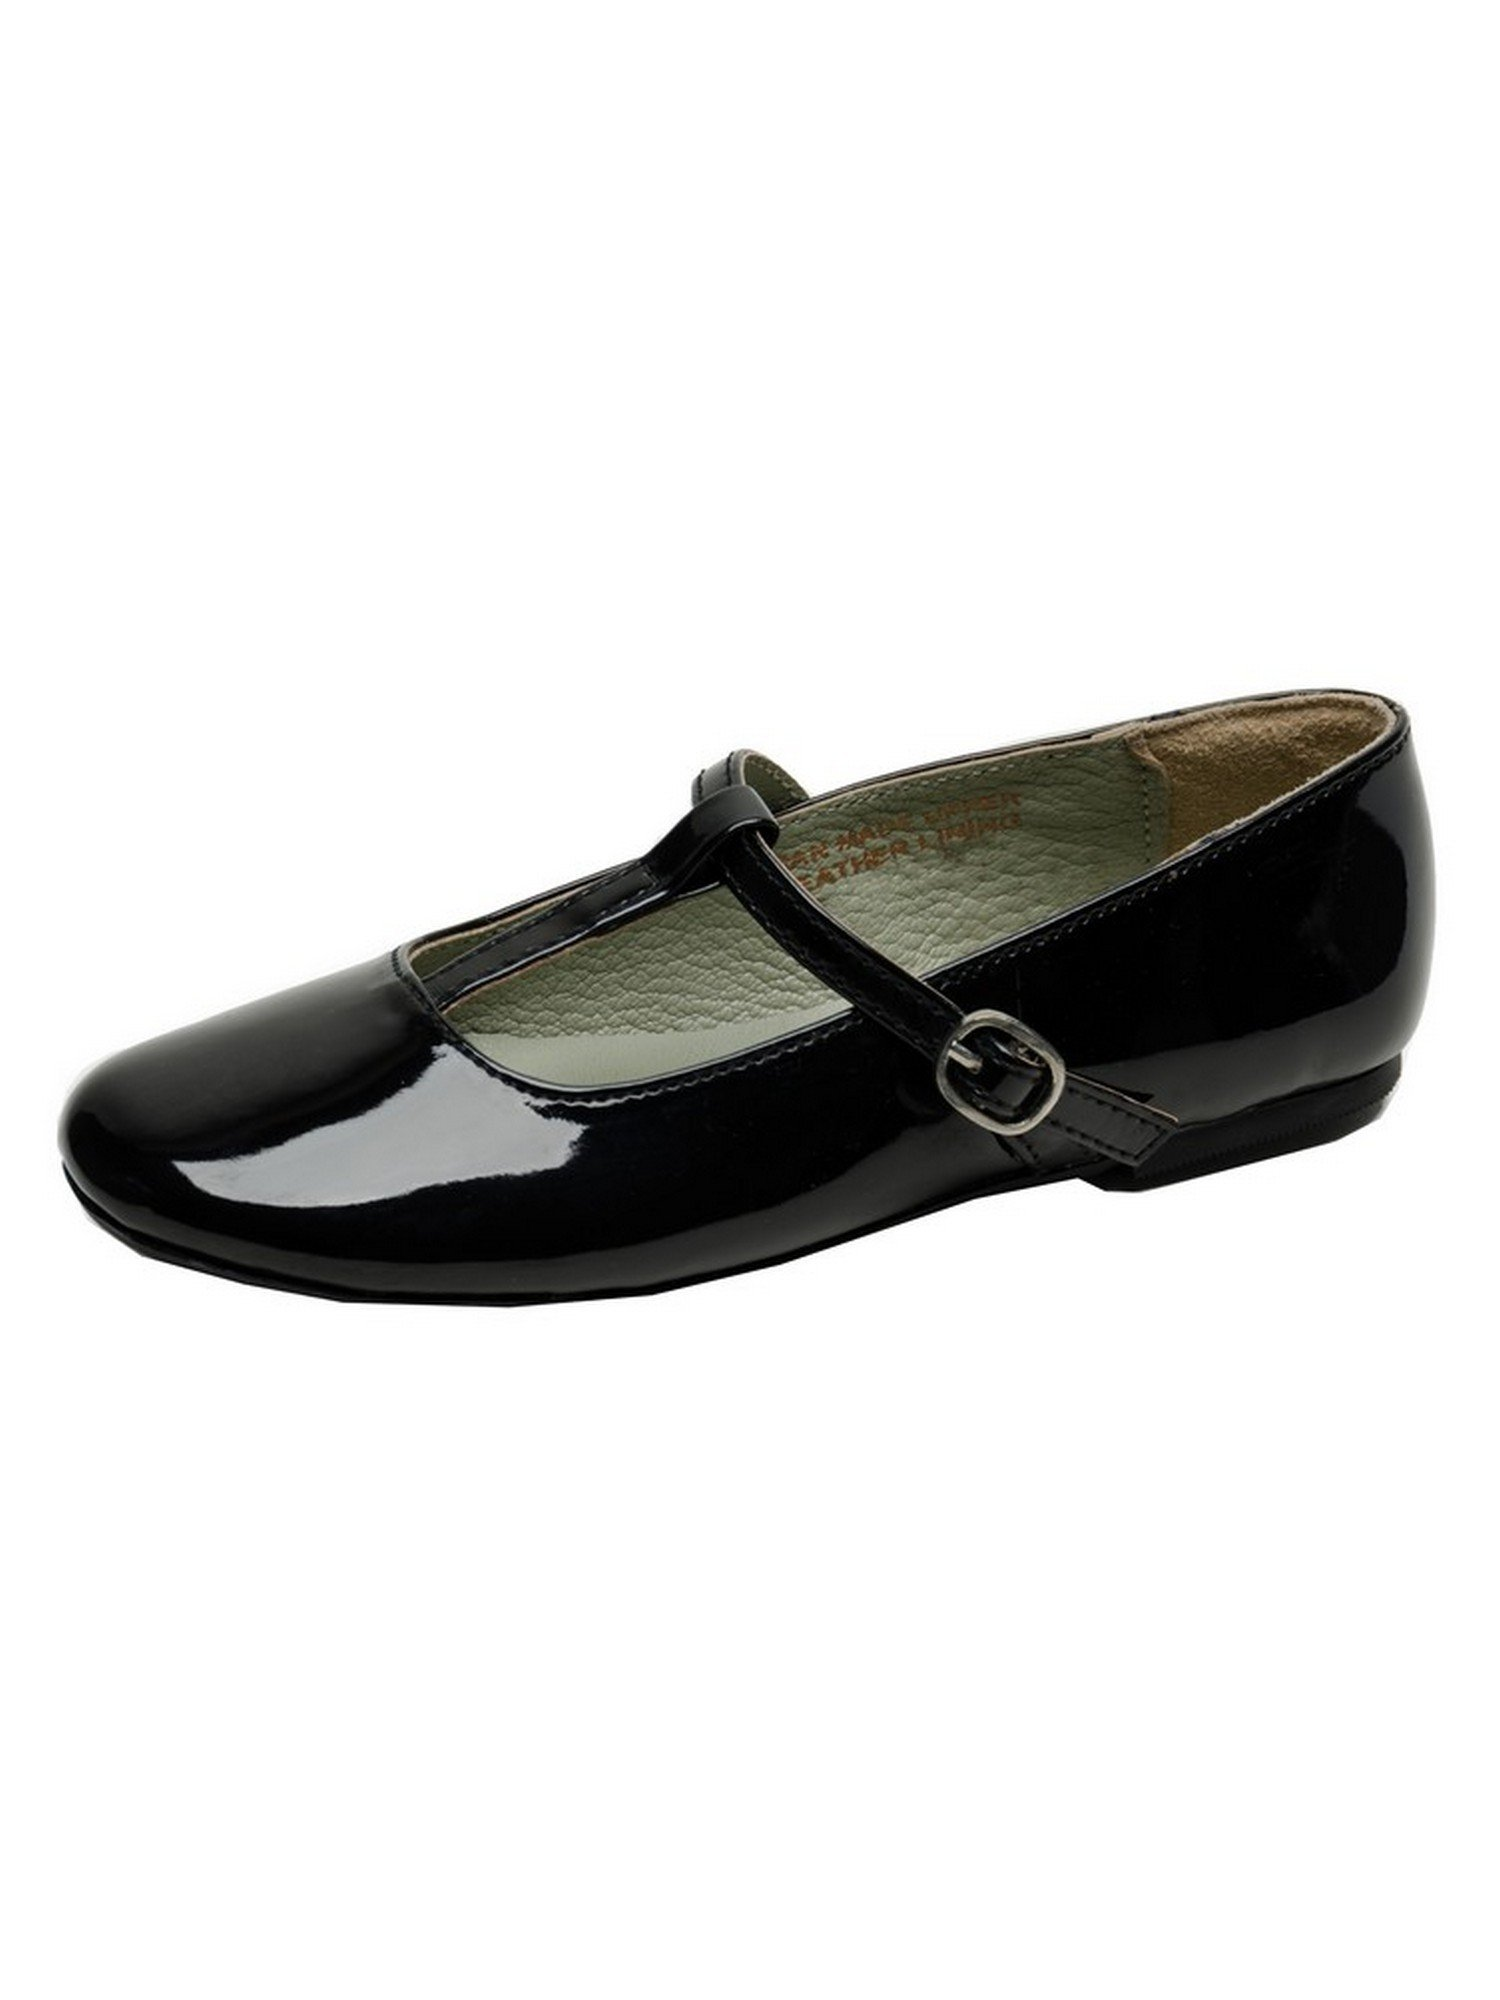 Pazitos Girls Patent Black T-Strap Buckle Casual Shoes 1 Kids